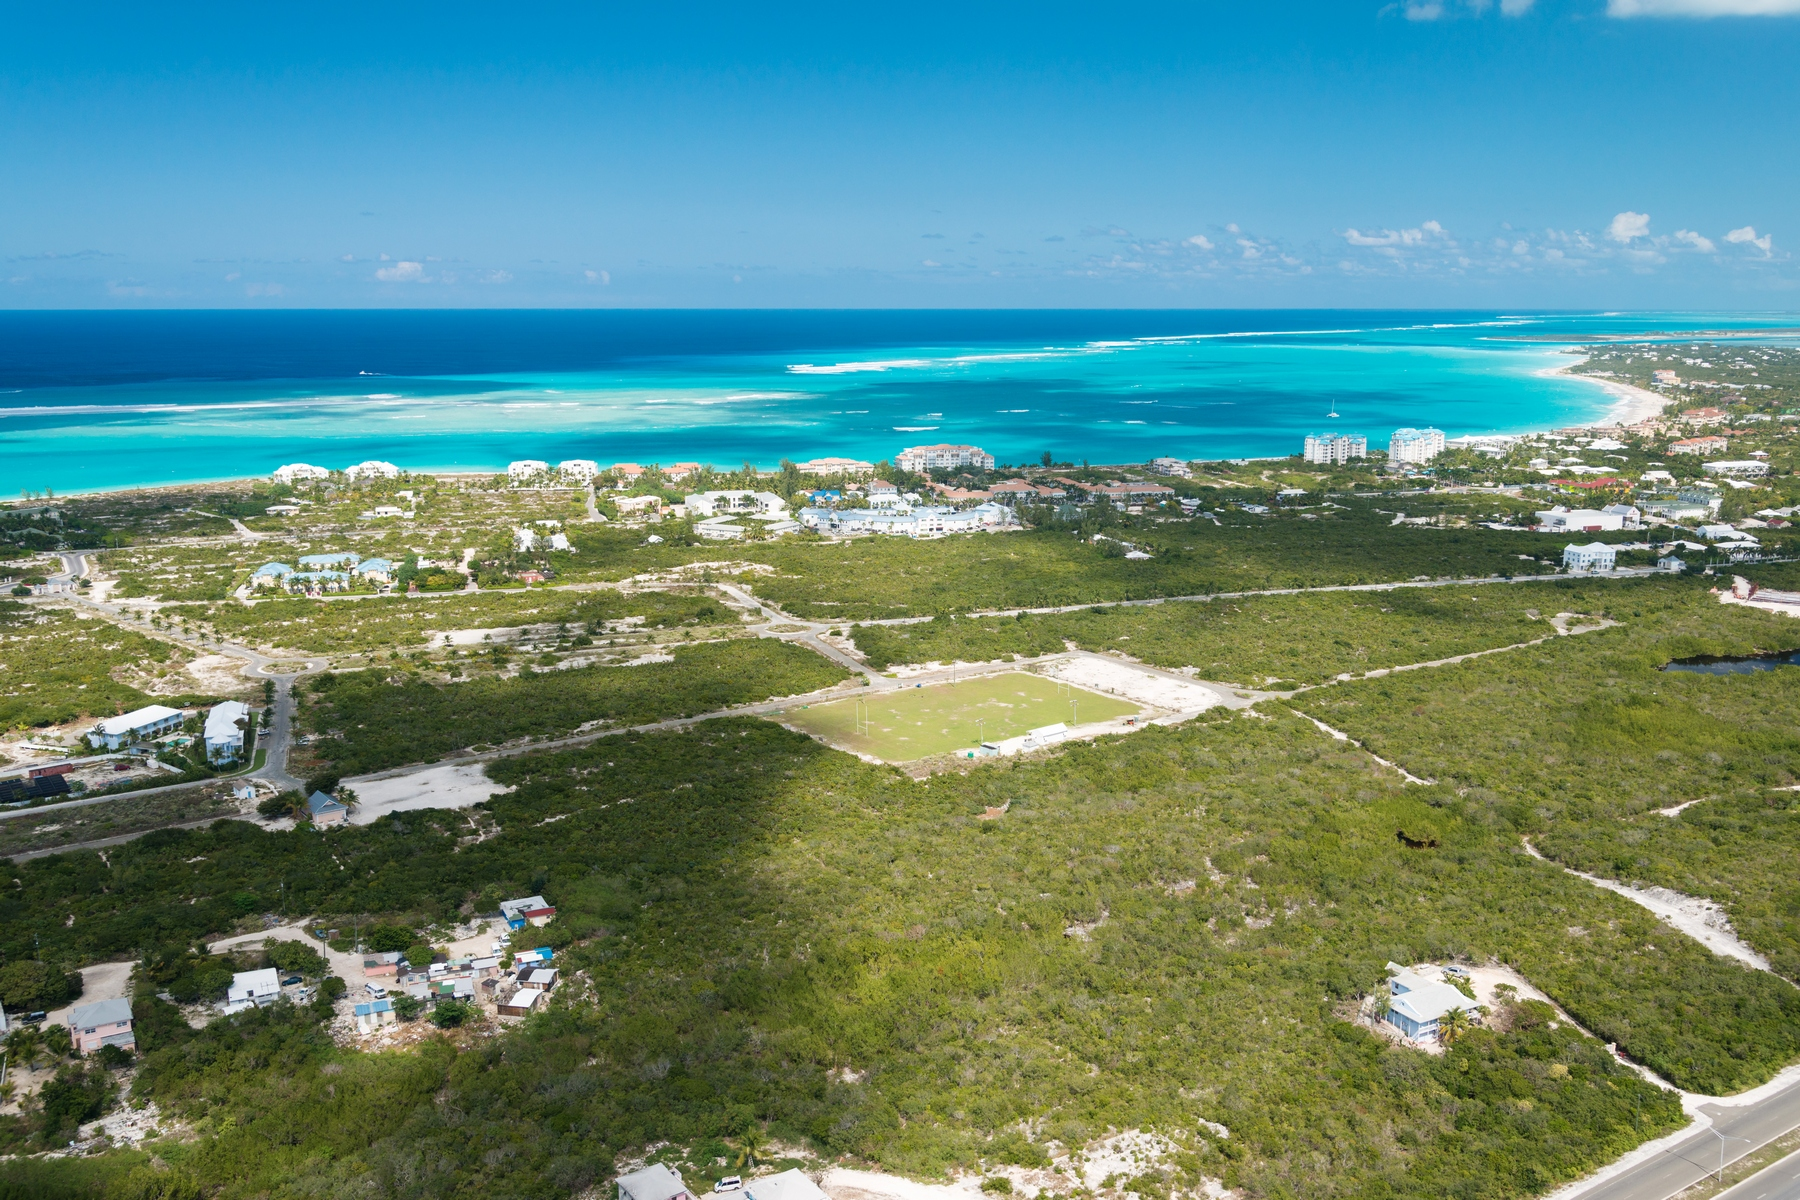 Other Residential for Sale at Village at Grace Bay Grace Bay, Turks And Caicos Islands